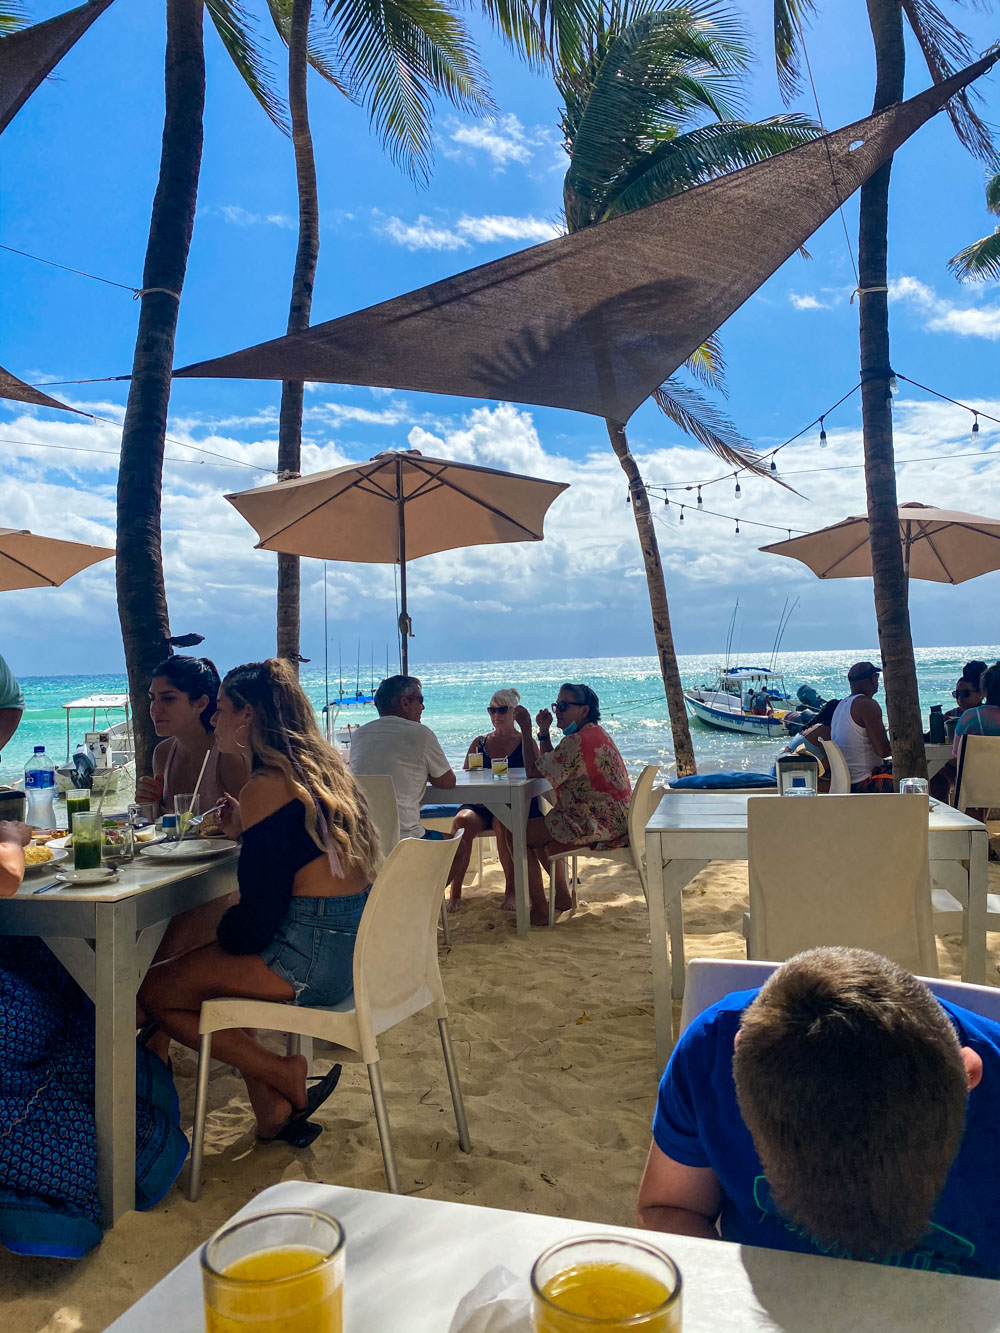 Asi Beach Club in Playa Del Carmen, an outdoor restaurant situated on the beach under lush palm trees.